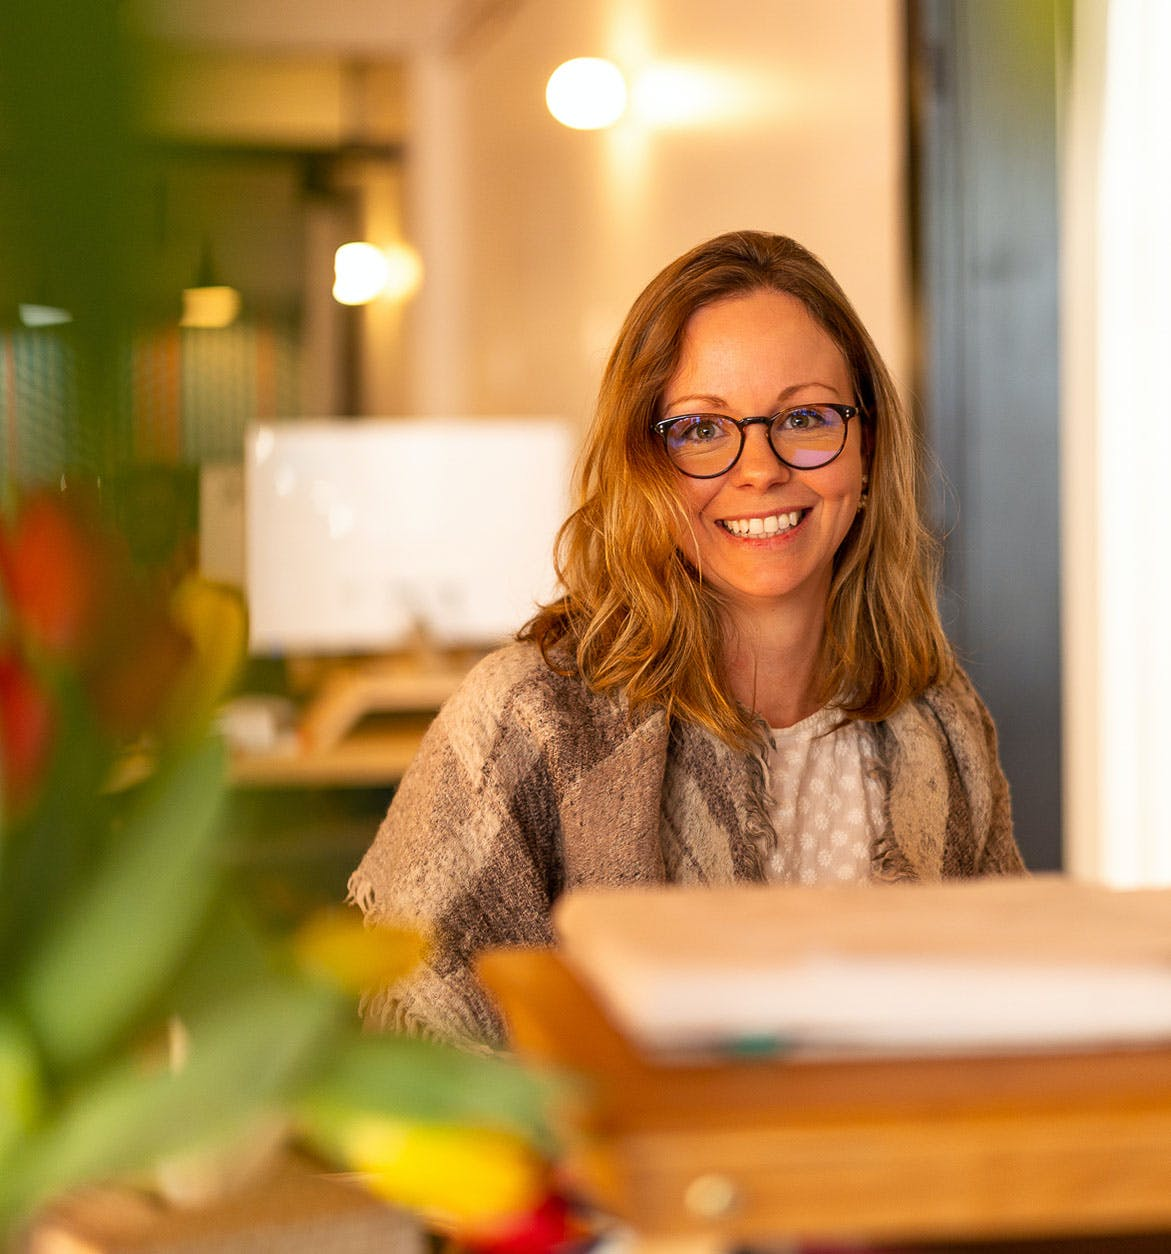 woman with glasses at plotly sitting at her desk